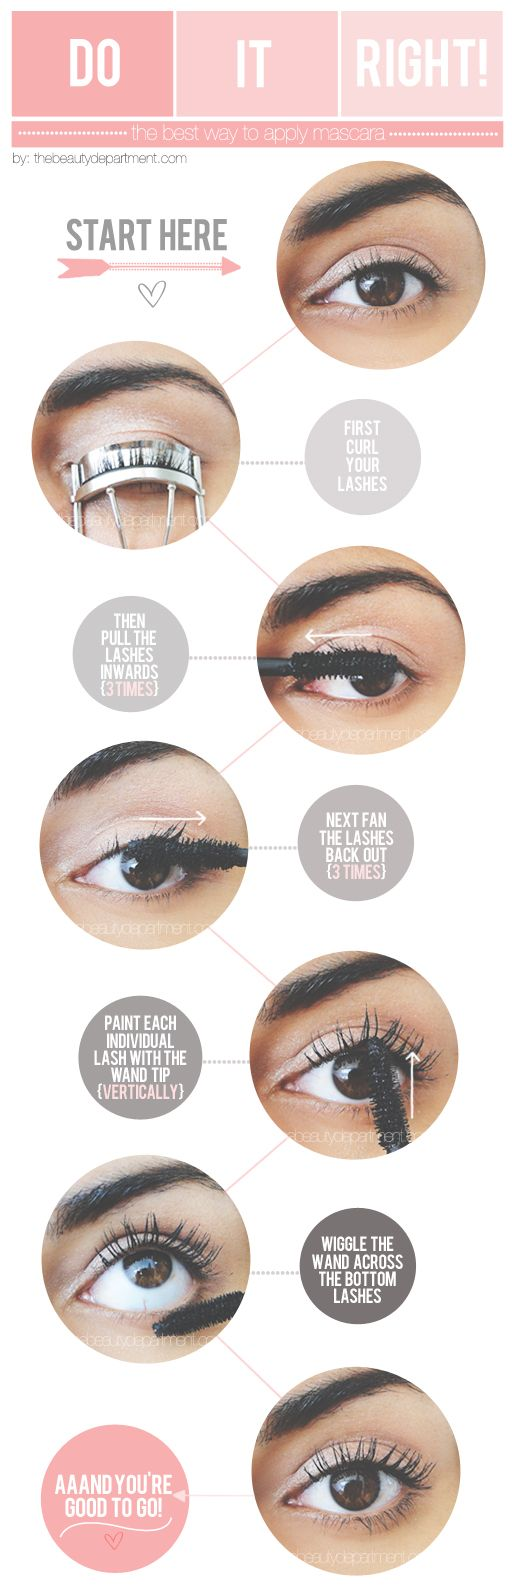 How to get the most from your mascara